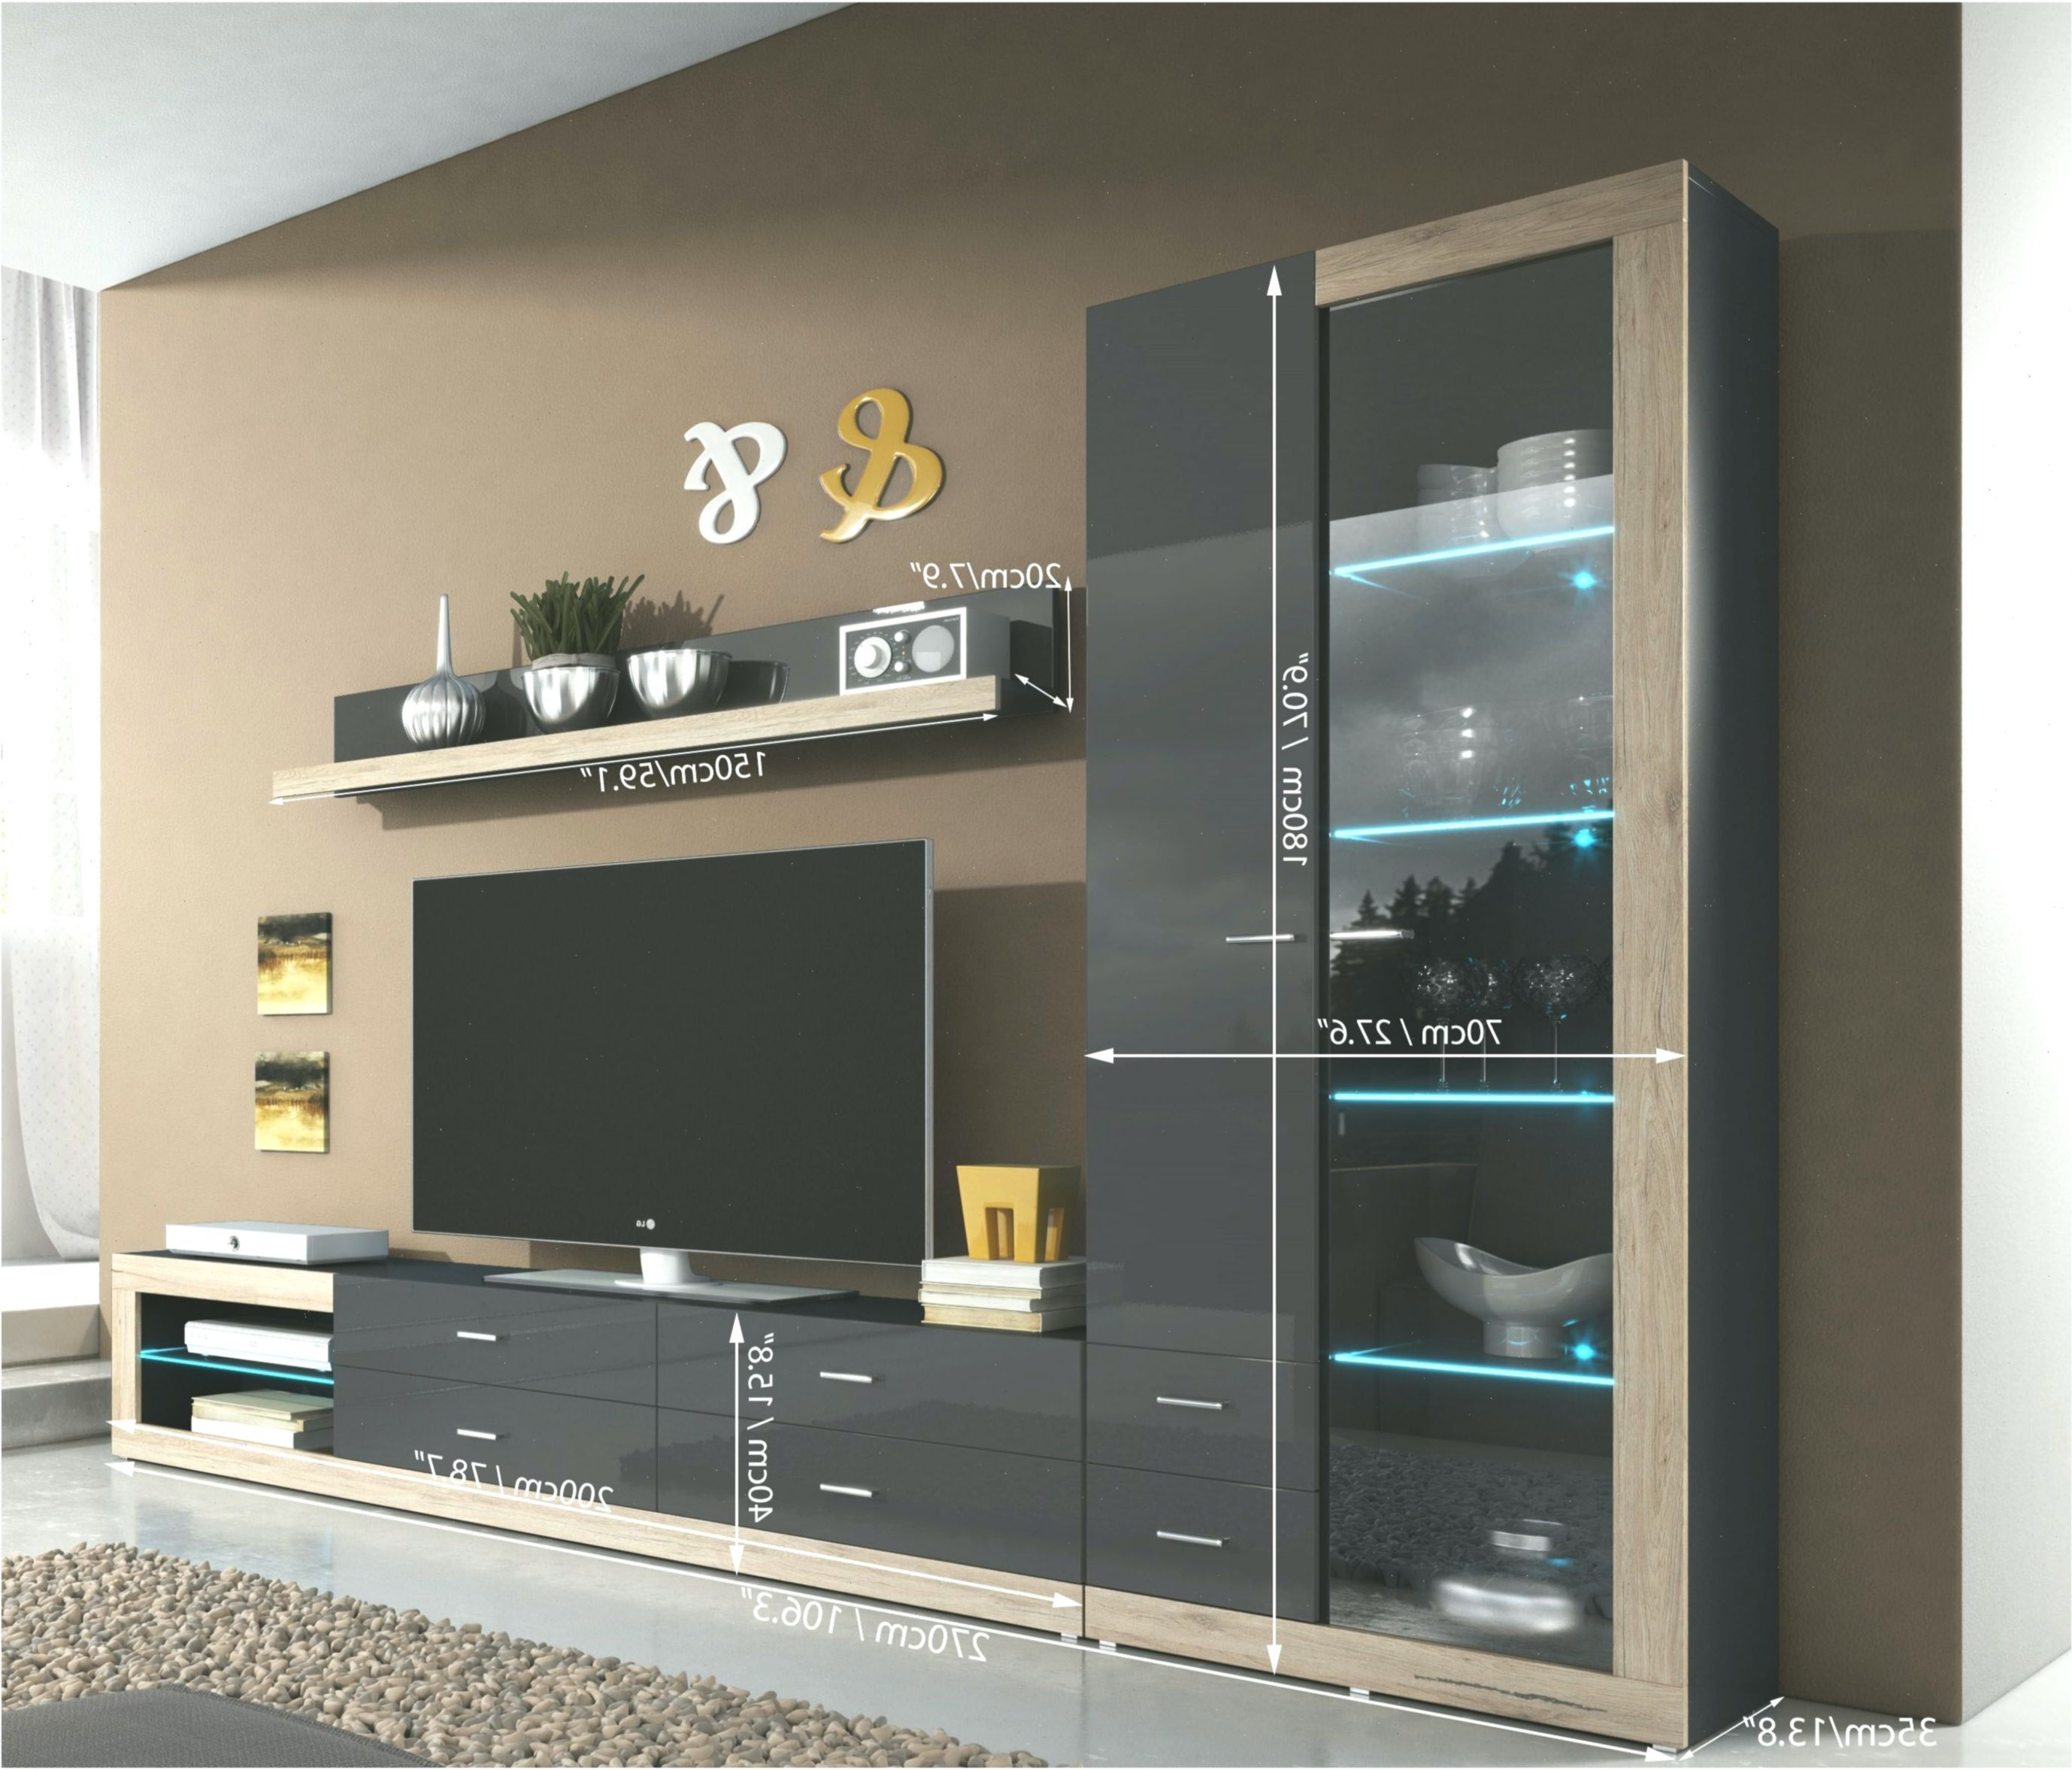 Awesome Tv Wall Cabinets Living Room Wohnzimmertvgert Awes